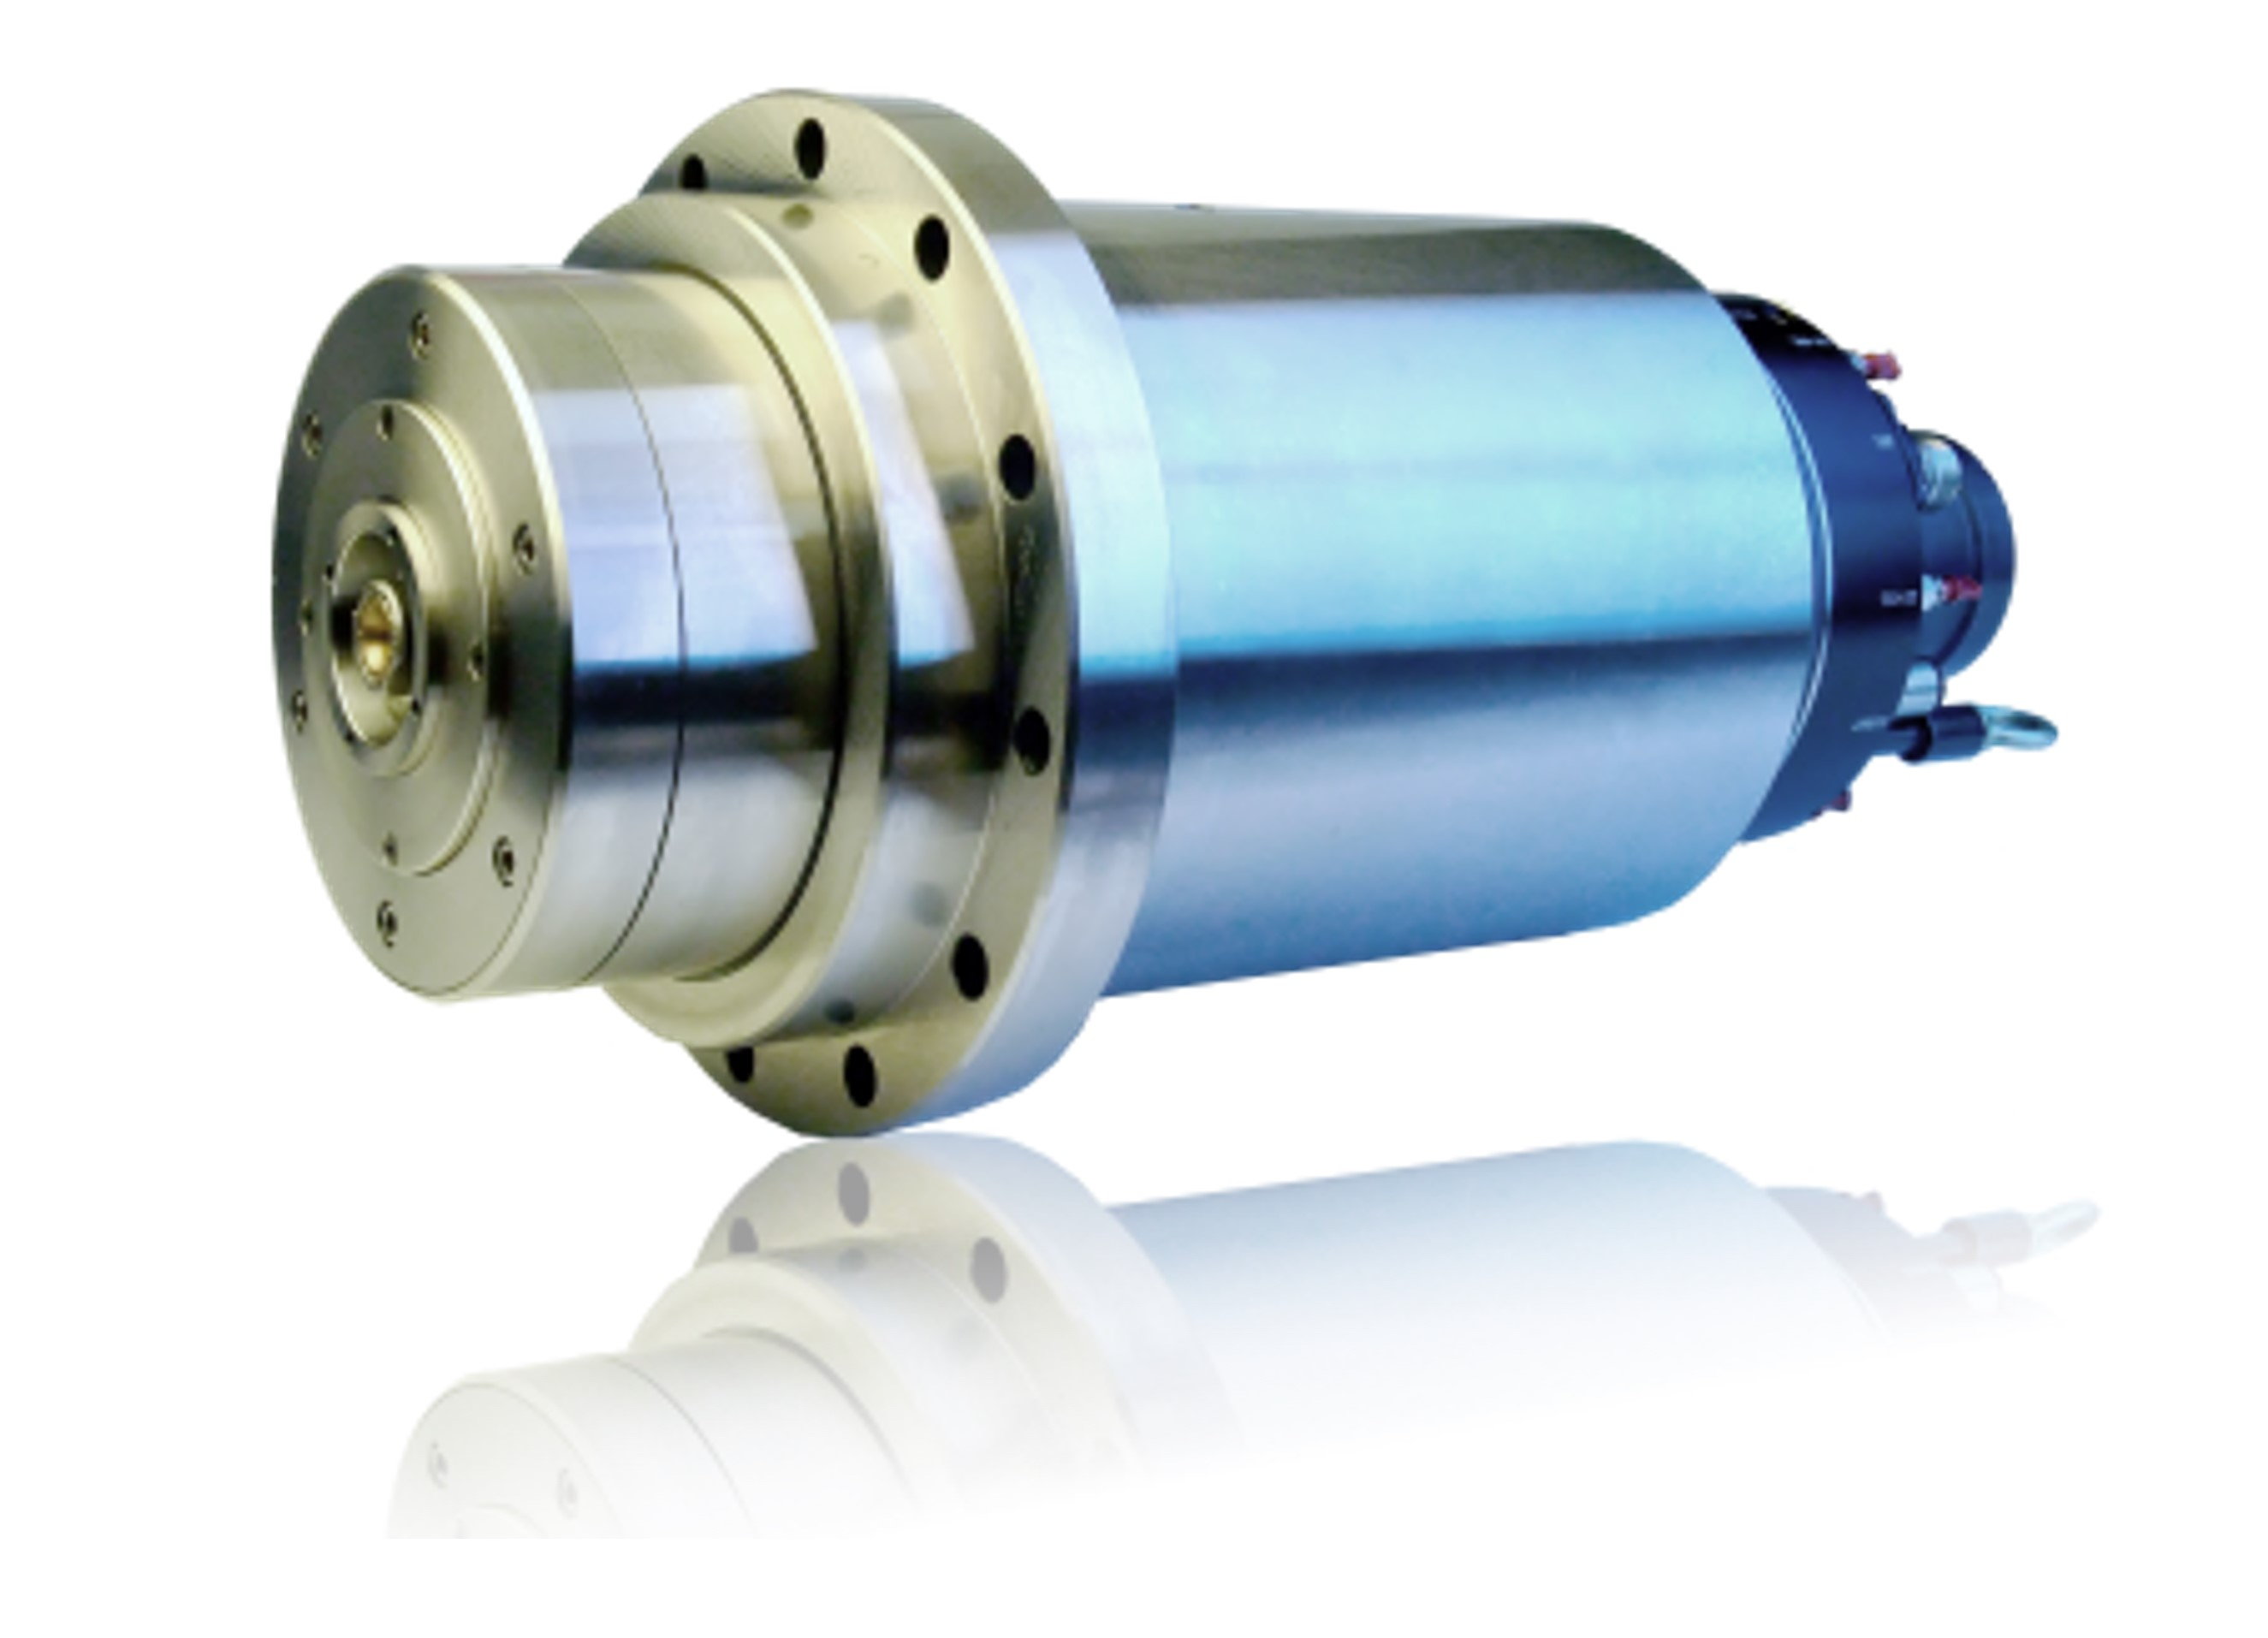 SY-210B Built-in motor spindle(HSK-A63)